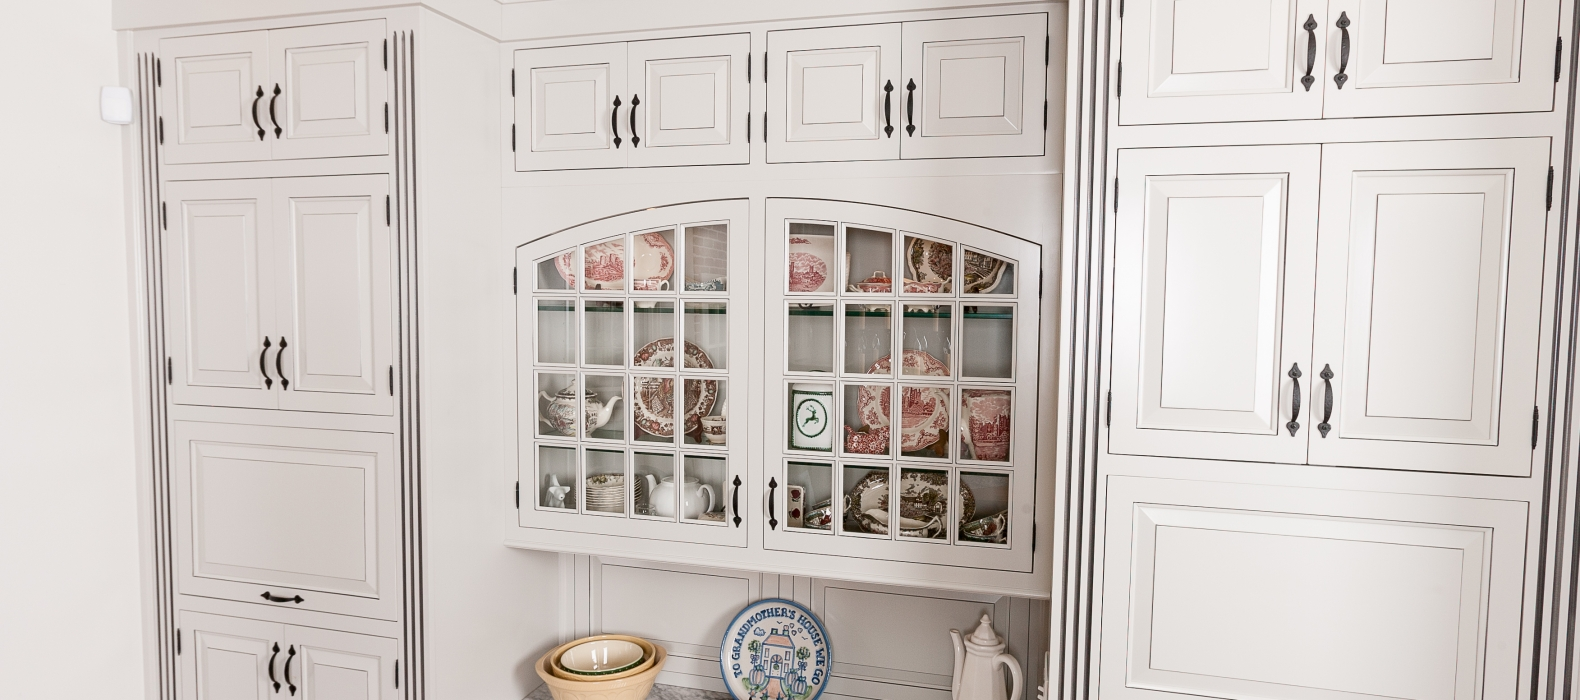 Blue River Cabinetry: A New Design Direction